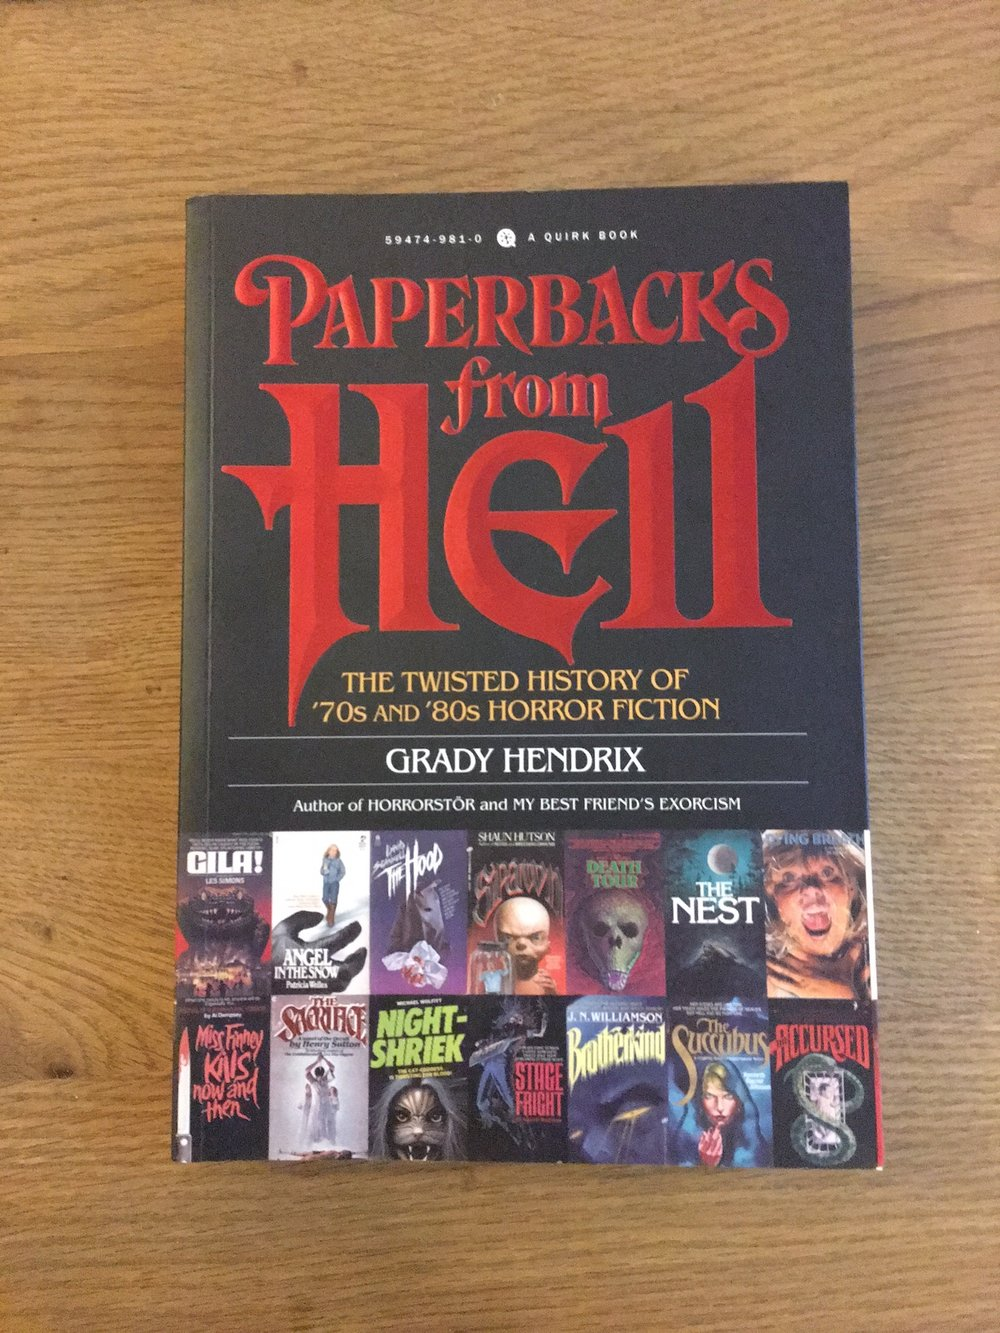 LB - Image - Horror Lounge - paperbacks from hell instagram image.JPG